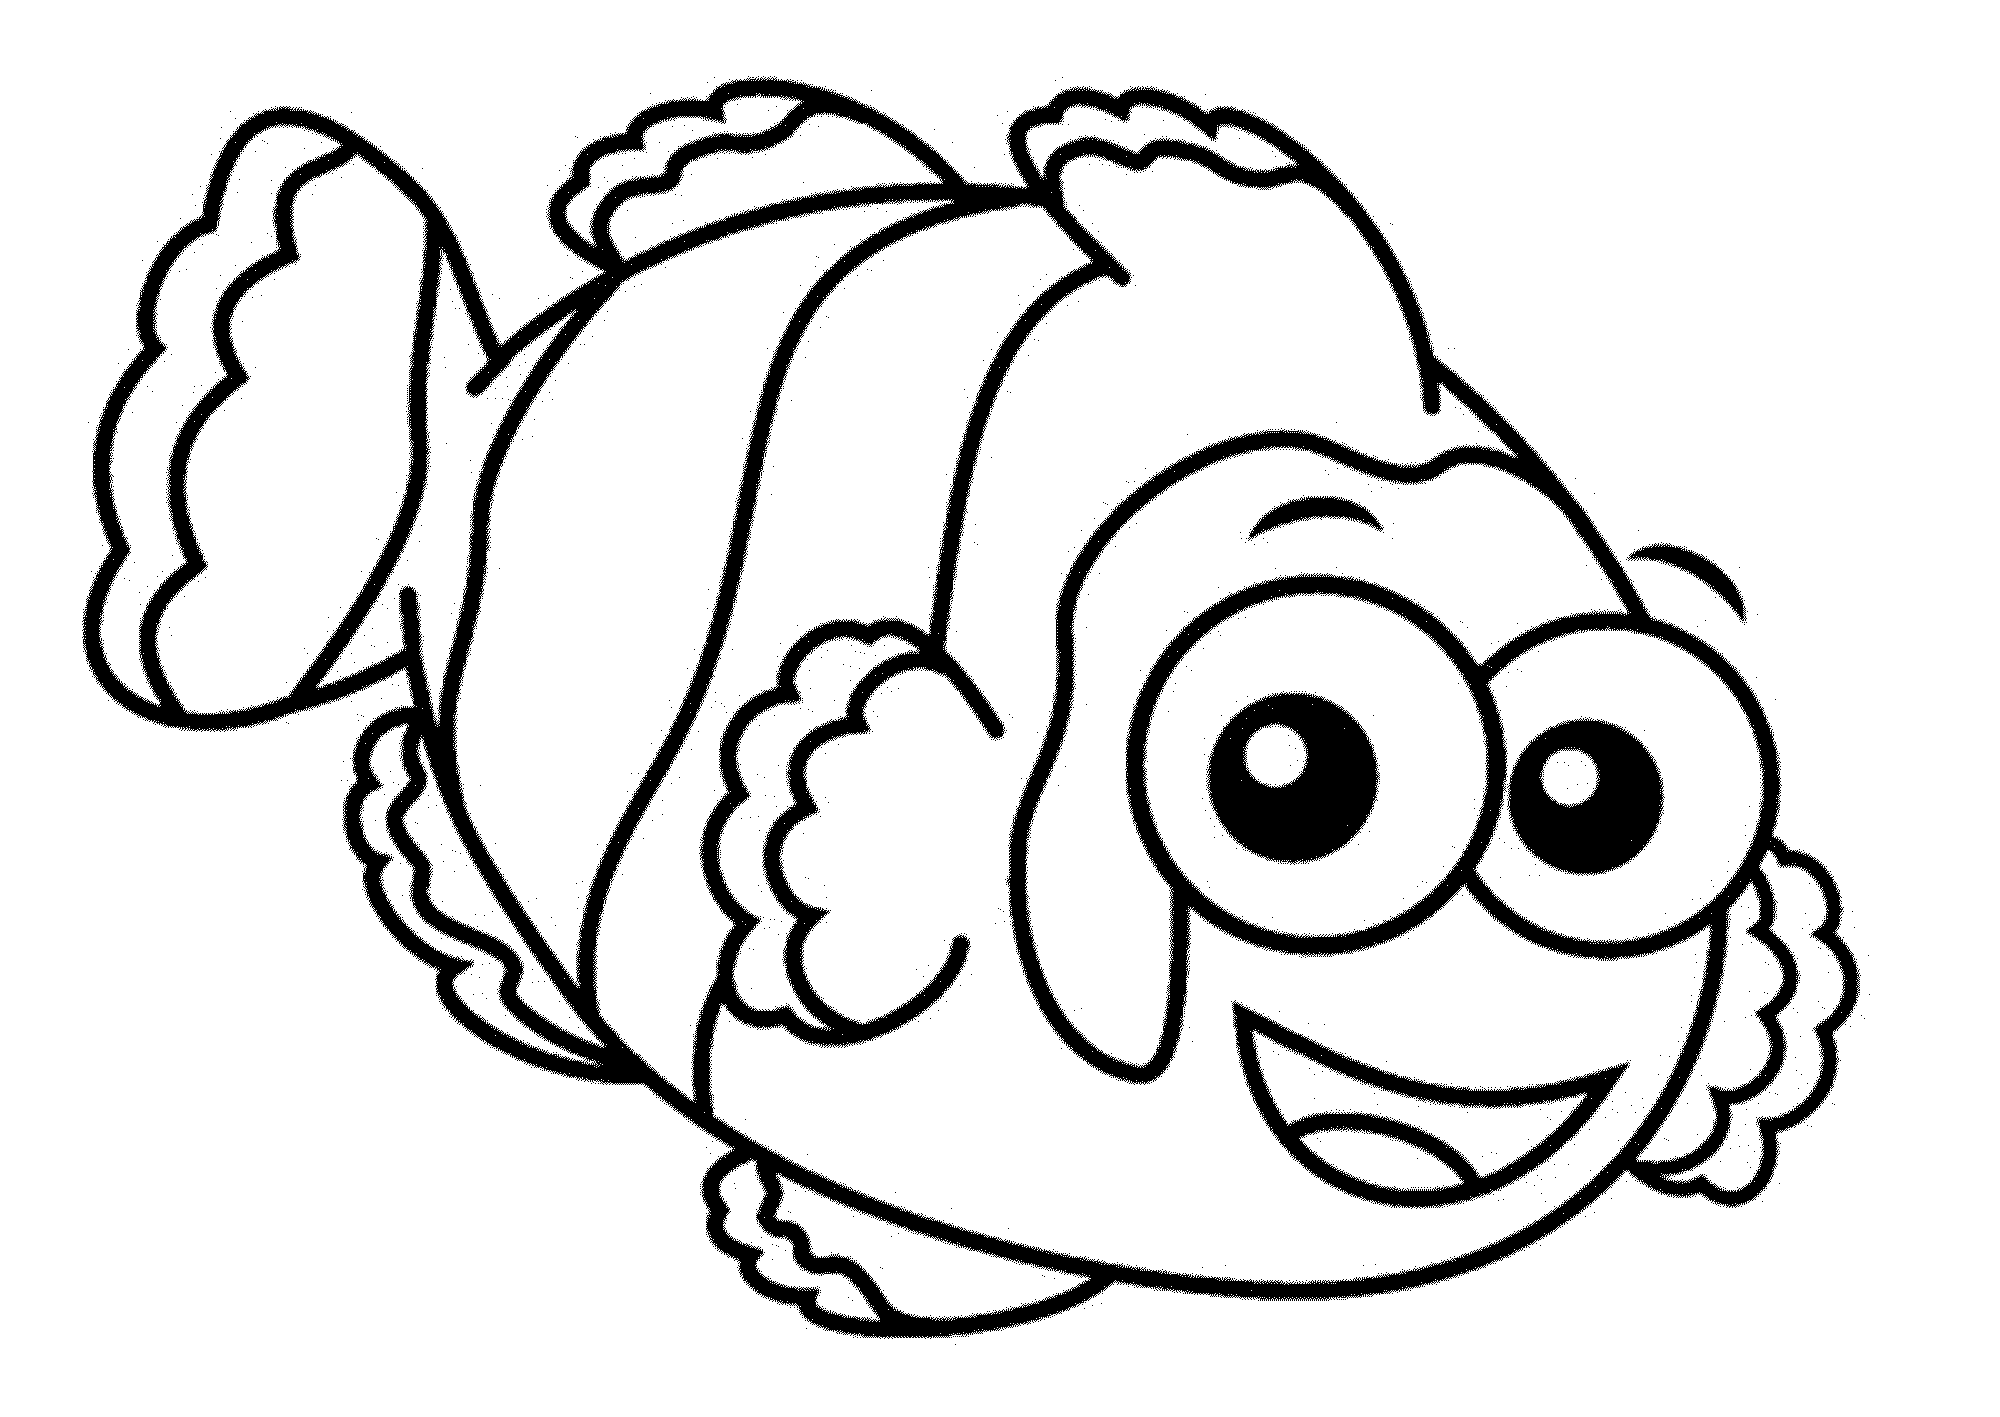 colouring picture of fish free printable fish coloring pages for kids clip art library picture colouring fish of